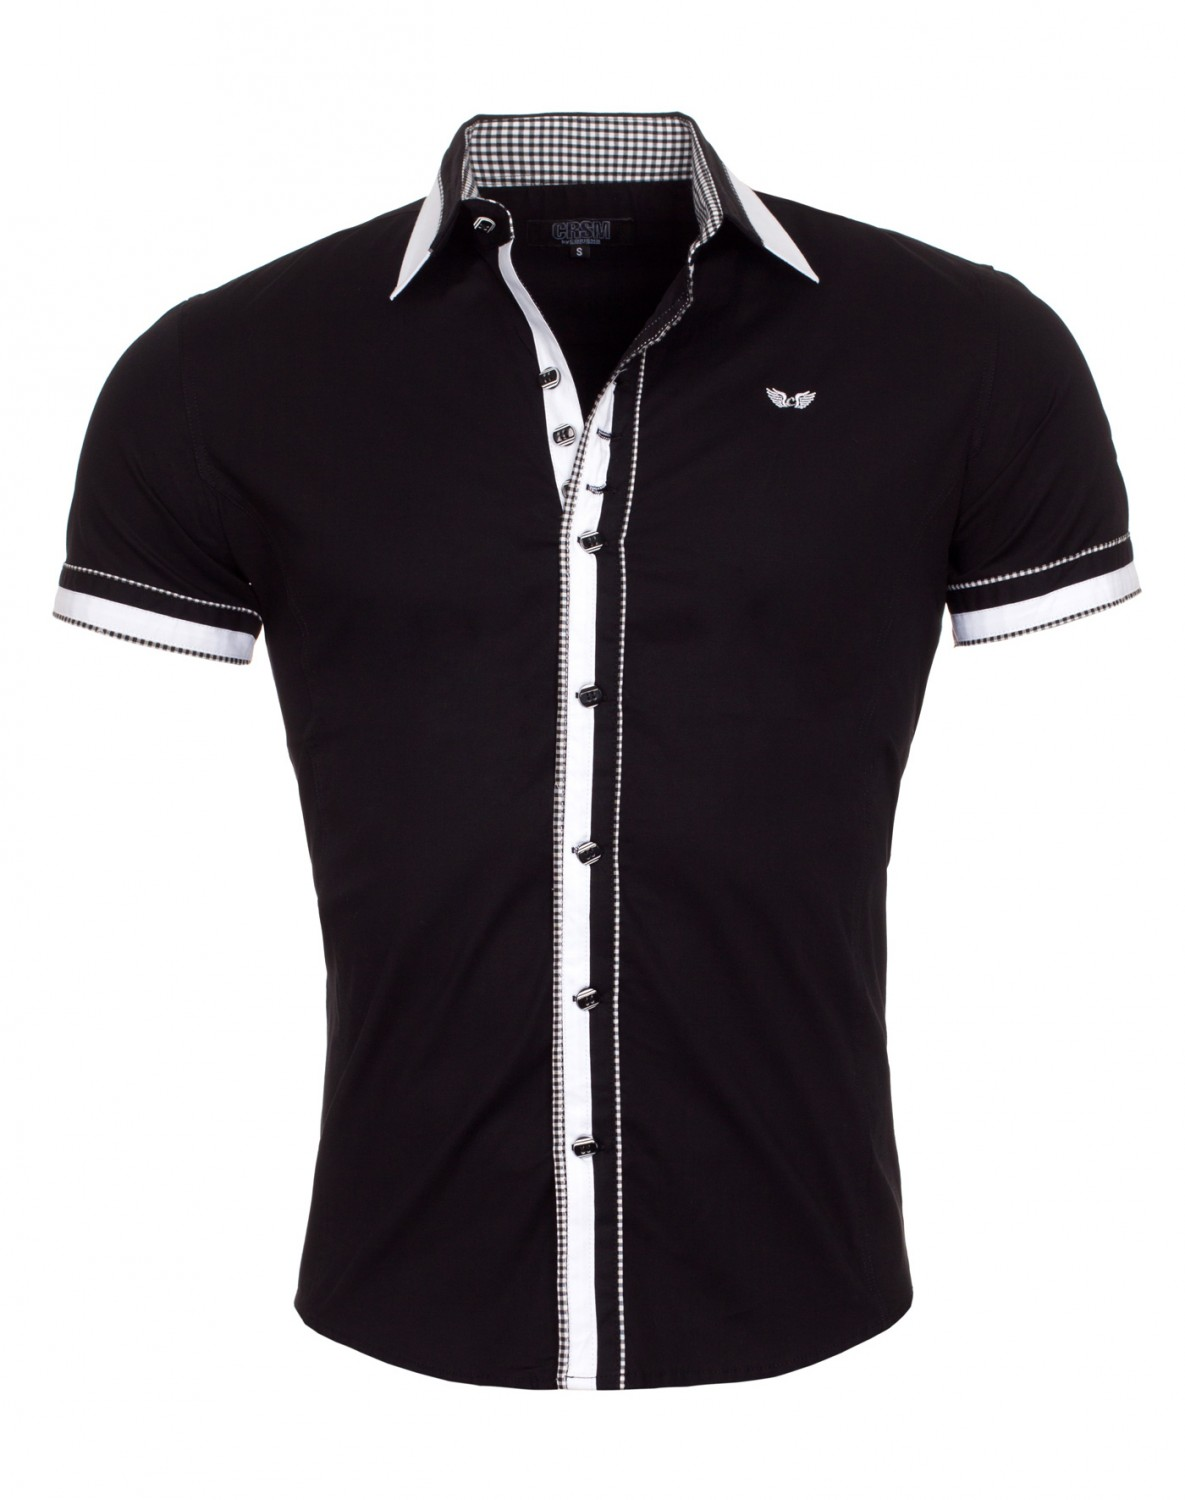 Chemise italienne homme noir 9023 - Chemise homme fashion coupe italienne cintree ...